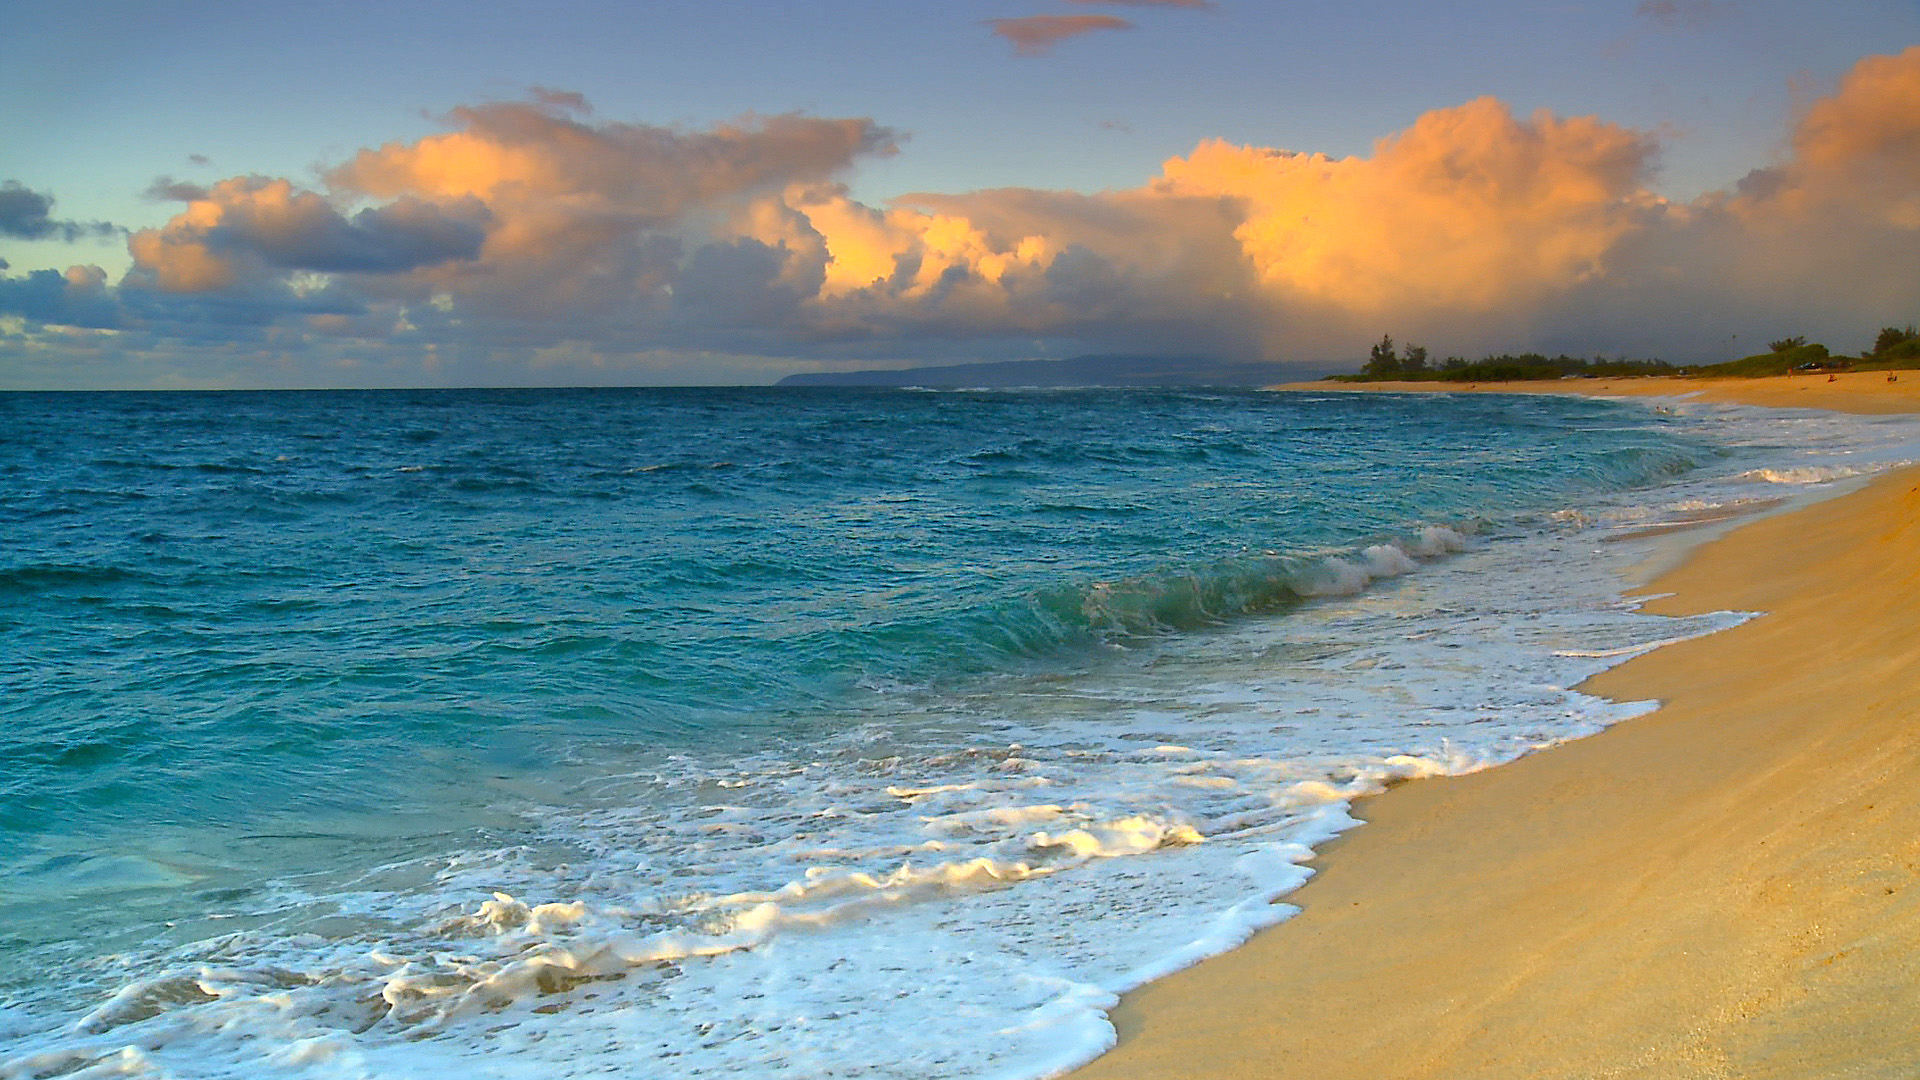 10 New Hawaii Beach Pictures Wallpapers Full Hd 1920 1080: New Survey Ranks Hawaii Beaches Among World's Best